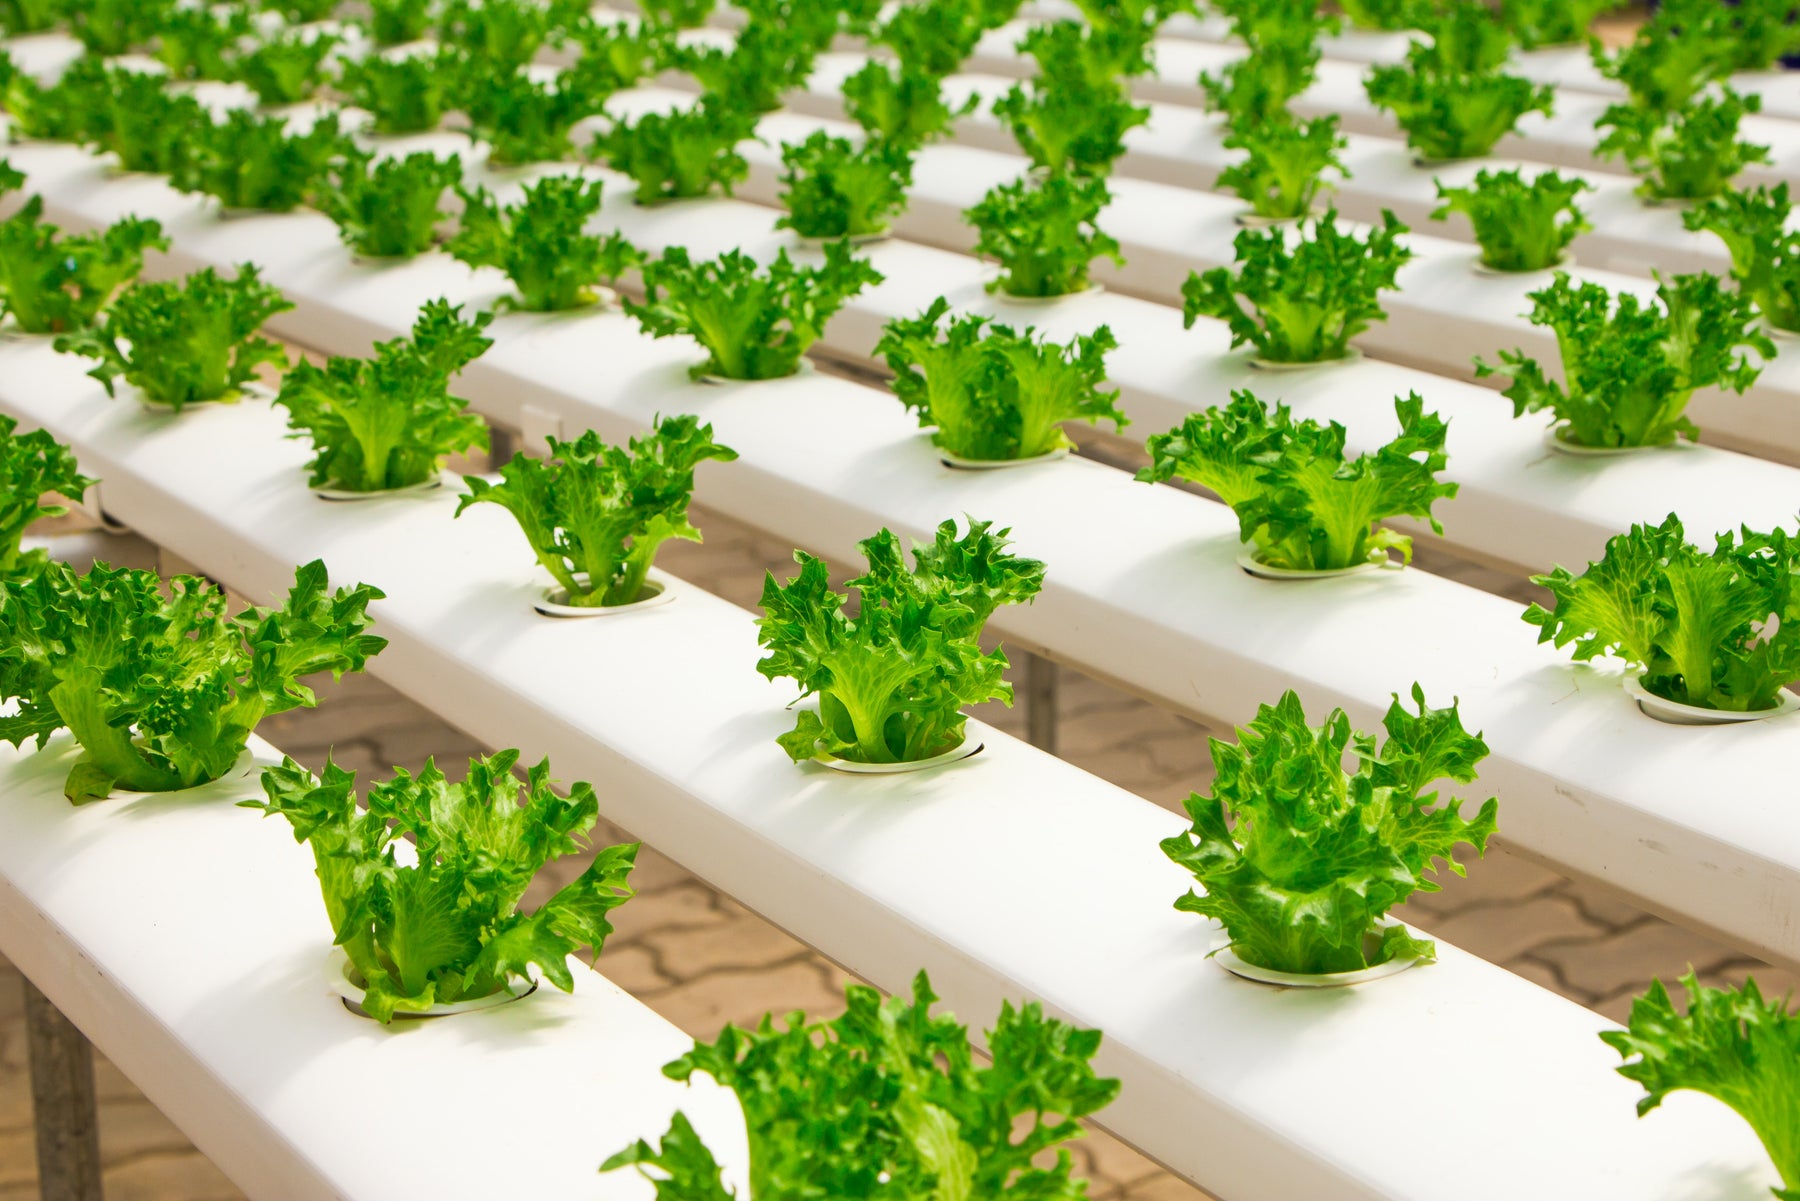 What Is Hydroponics?